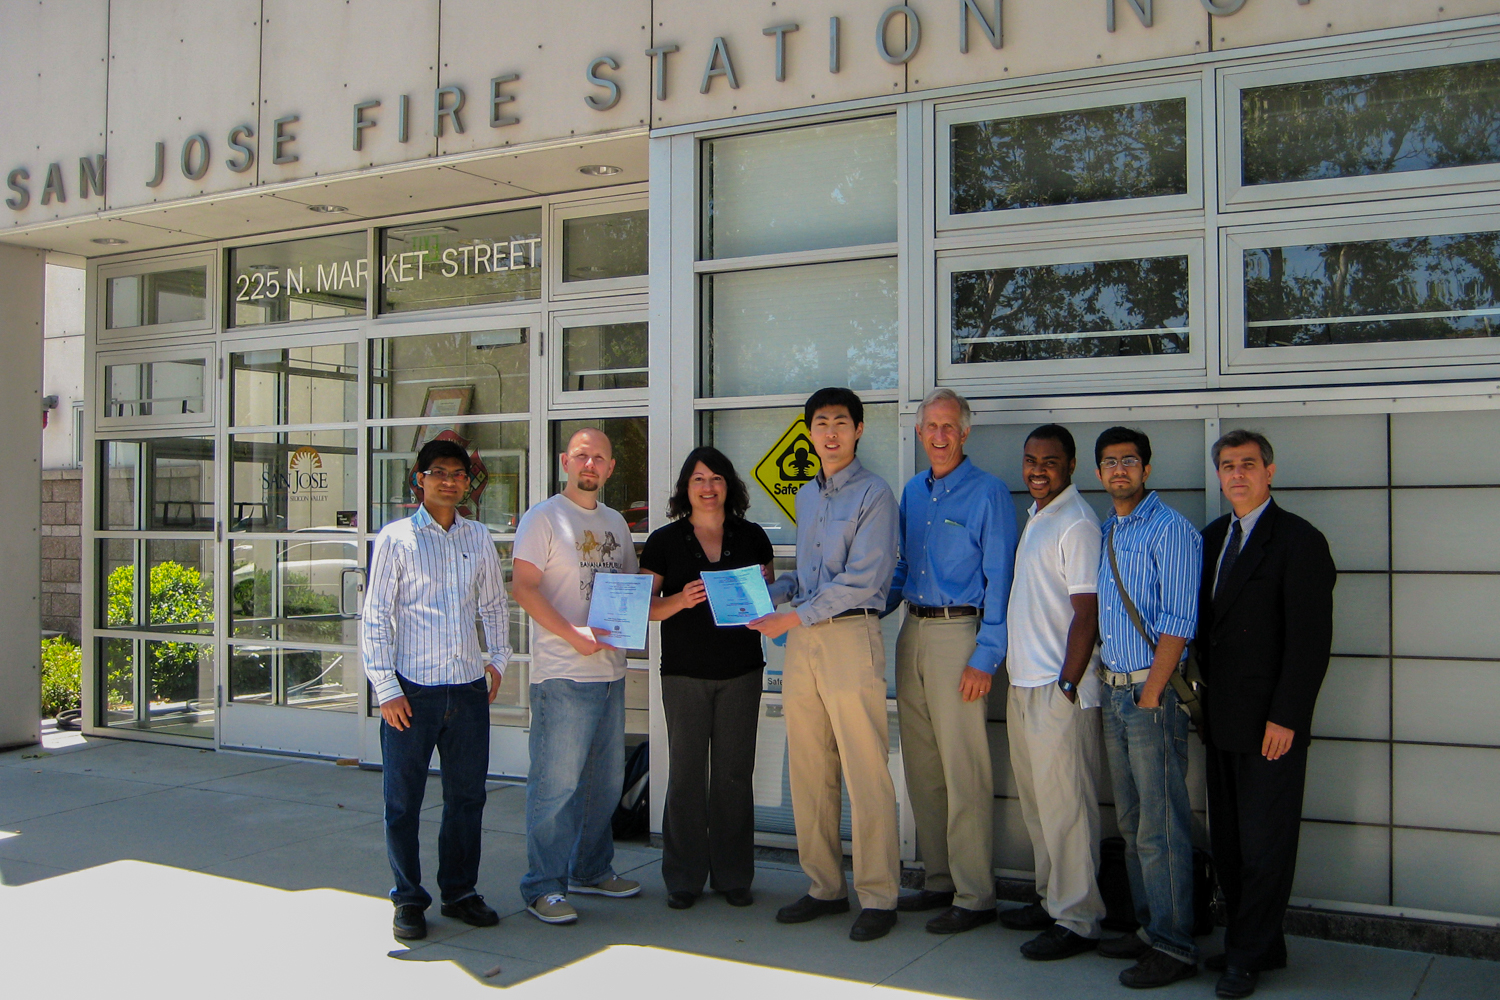 Presenting the complete feasibility analysis of installing solar water heaters on the city of San Jose's fire stations.